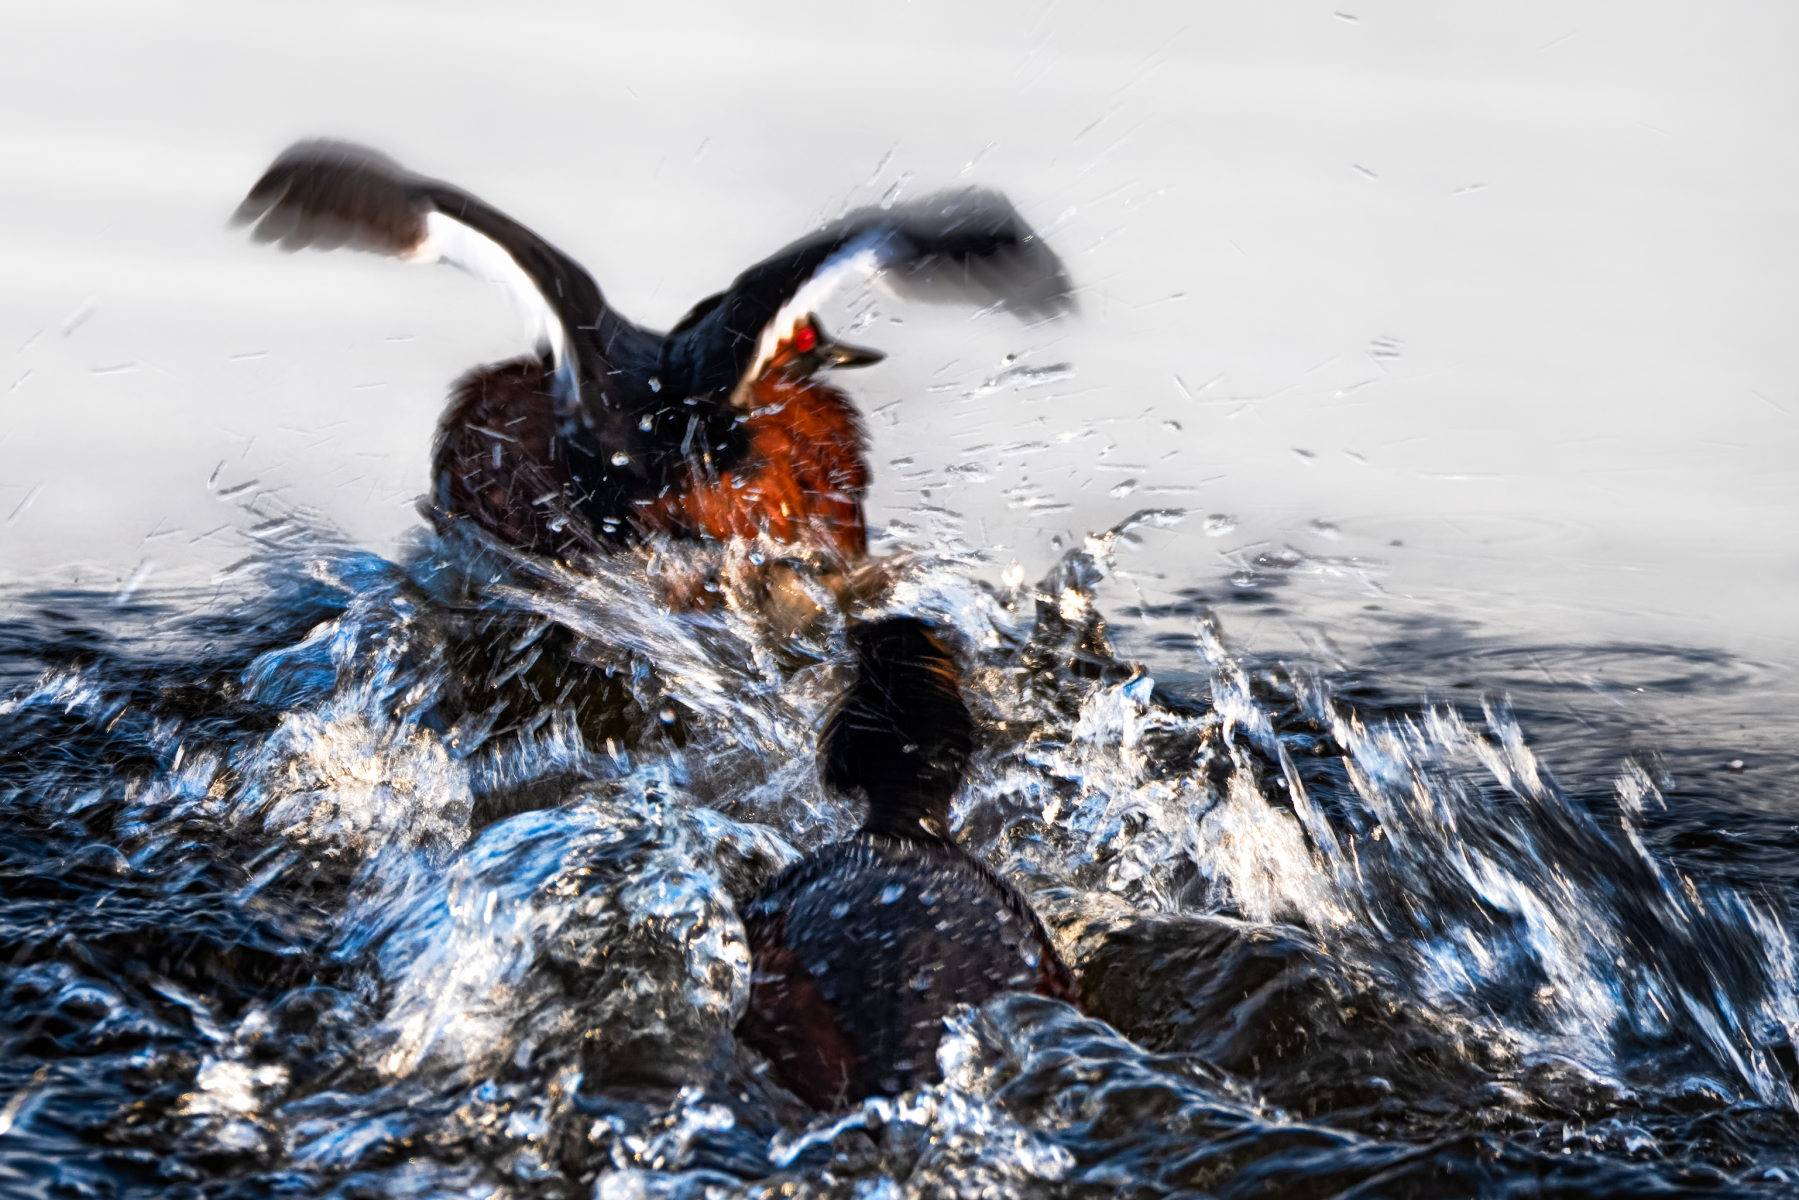 eared grebes churning the water in pursuit